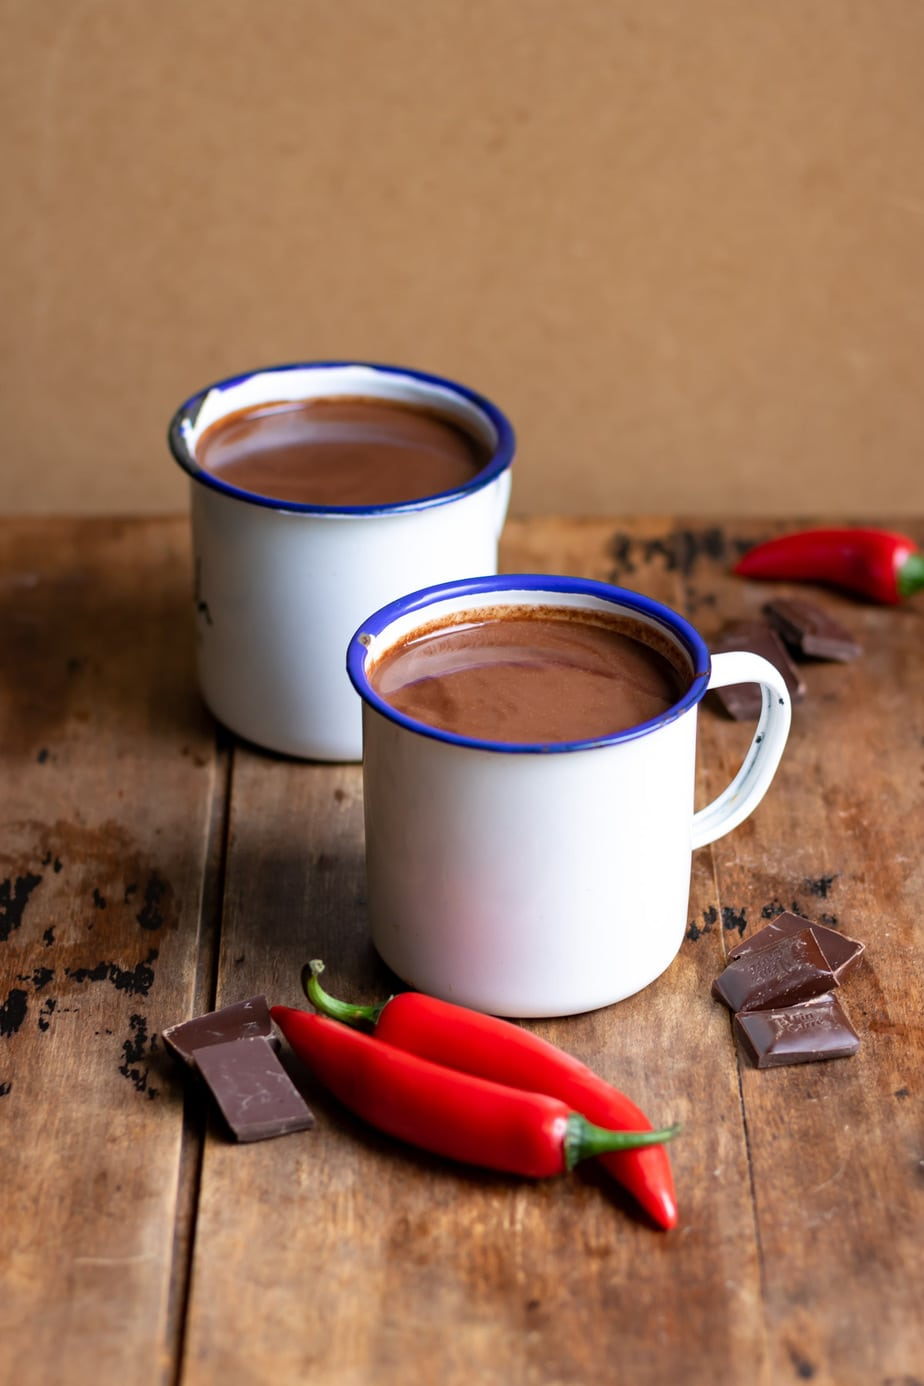 Table with two mugs of hot chocolate and chili peppers and chocolate on the table.